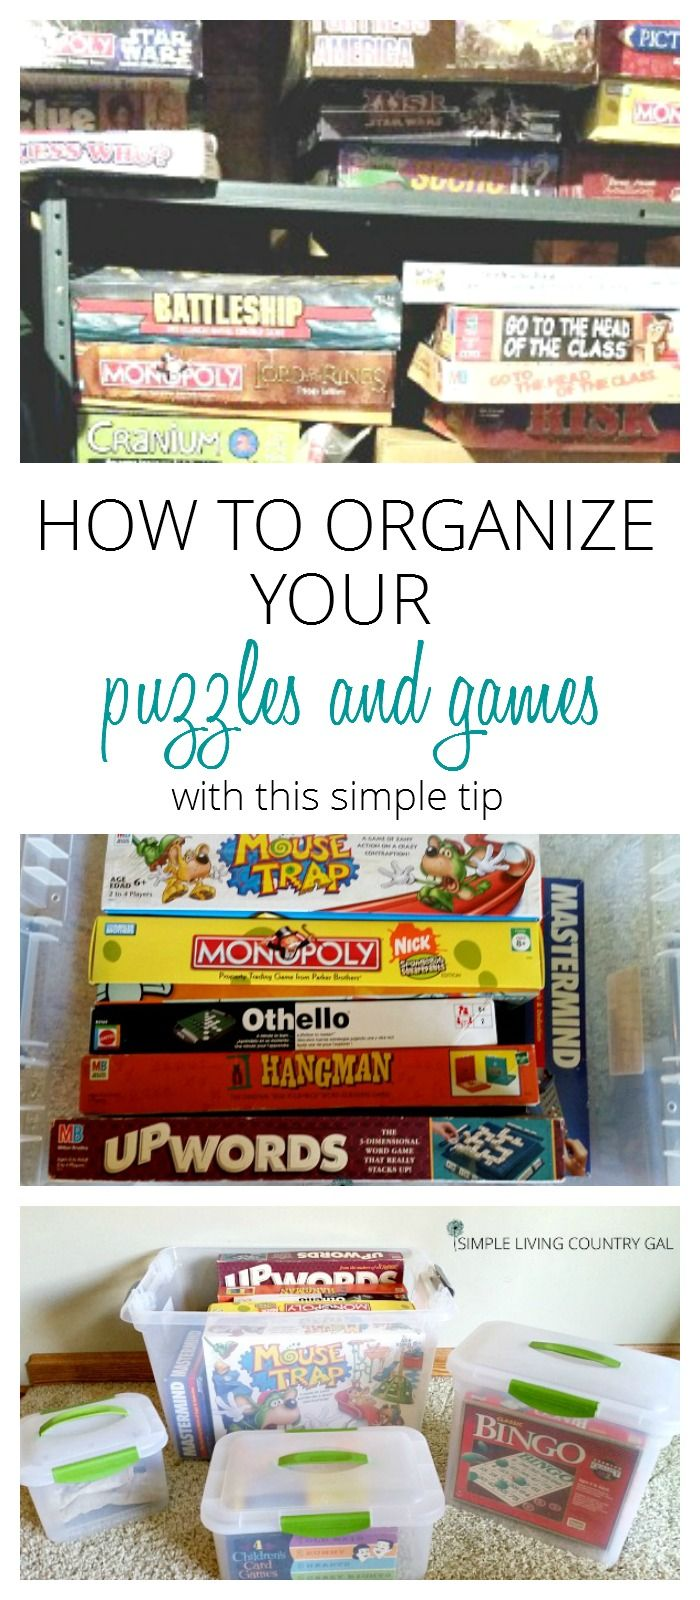 Tired of broken game boxes and missing pieces? Use this simple system to organize your games and puzzles so you can enjoy them more. via @SLcountrygal